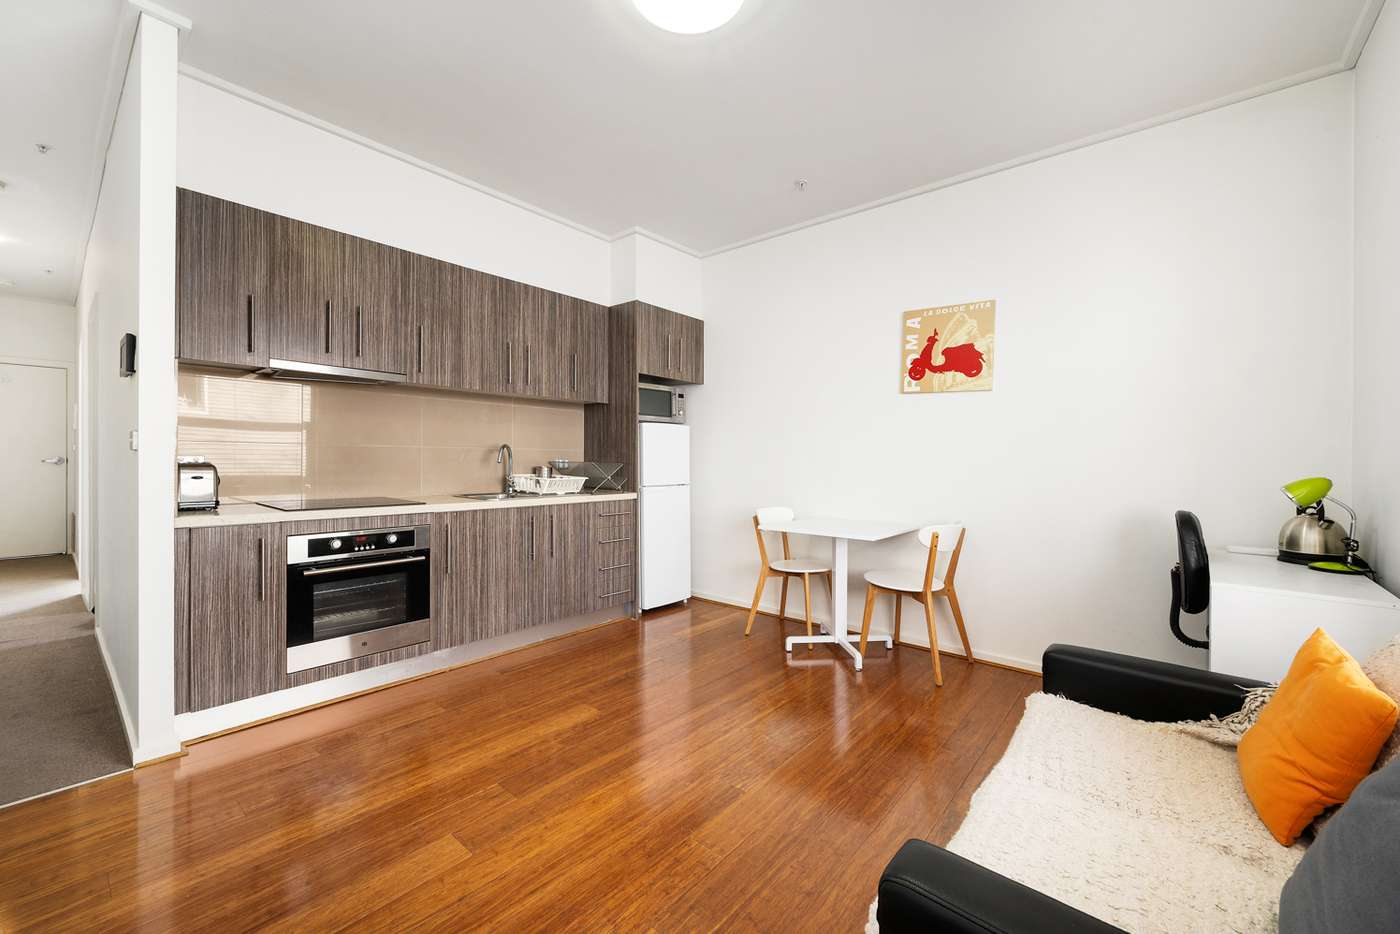 Main view of Homely apartment listing, 4/453 King Street, Melbourne VIC 3000